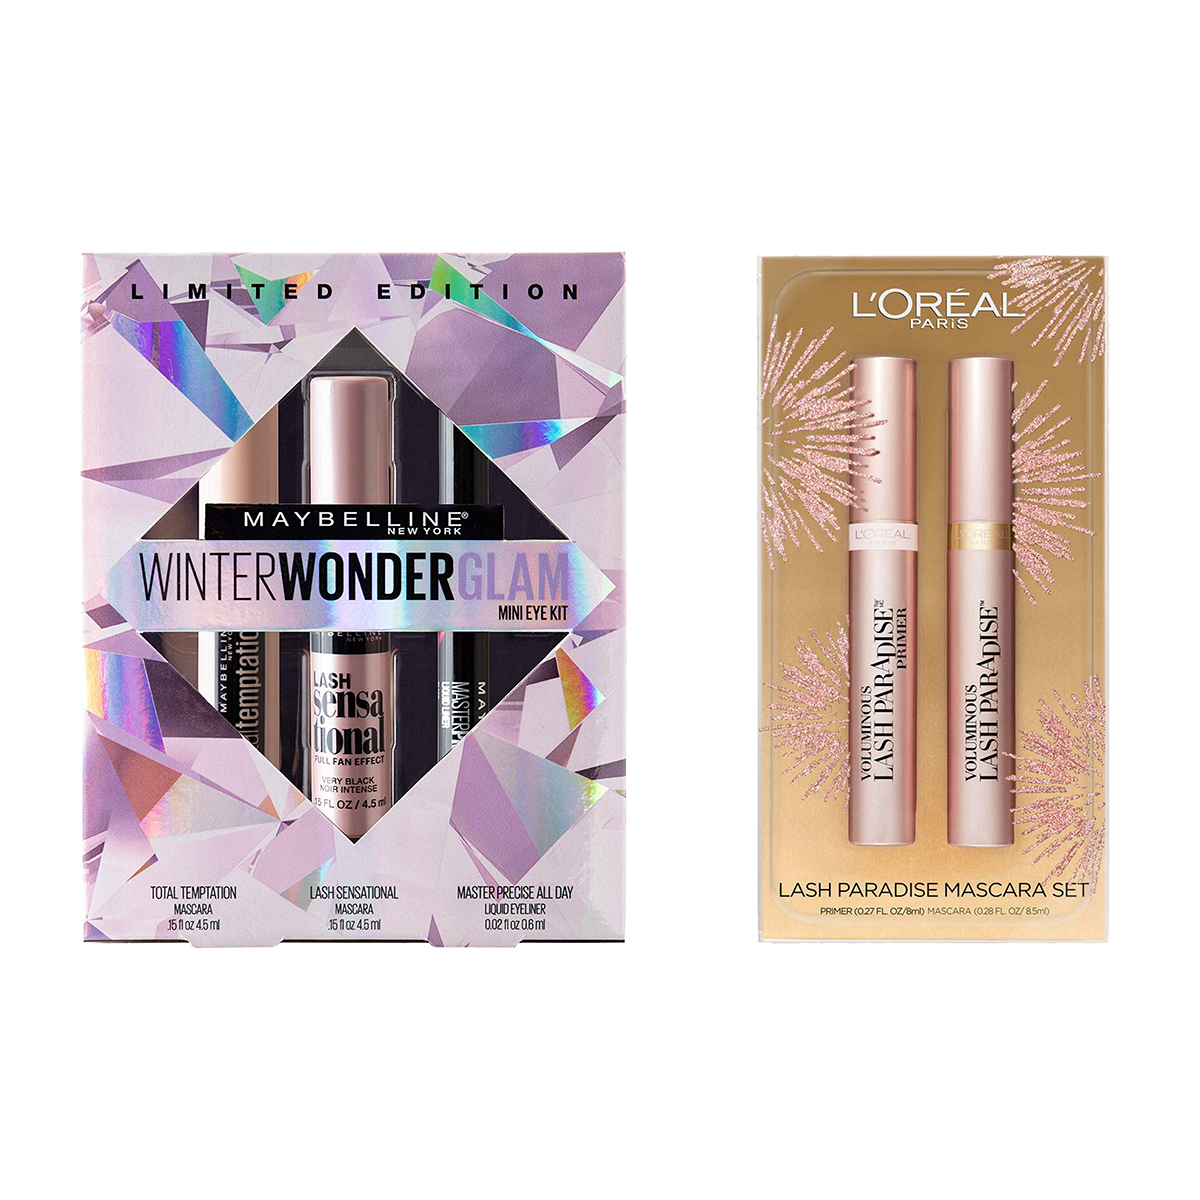 Maybelline Winter Wonderglam Mini Eye Kit / L'Oreal Paris Cosmetics Lash Paradise Lash Primer & Mascara Holiday Kit